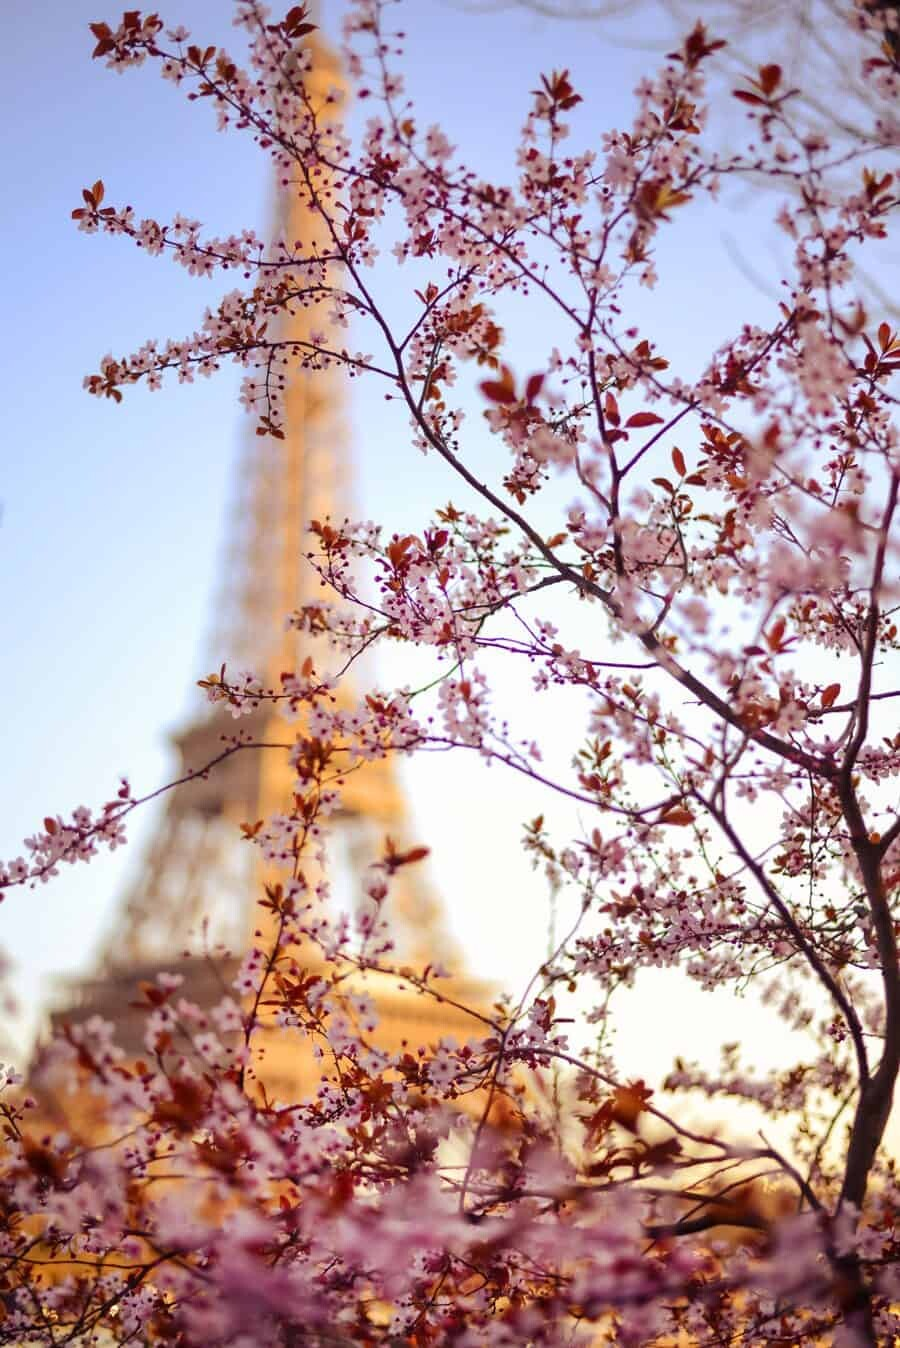 Focus - Having a monument as obvious of the Eiffel Tower allows you to play around with focus and feature another subject in the forefront of your photograph. In this case I used the beautiful blossom flowers that were in bloom along the Seine River and ensured the shape of the tower was still visible.